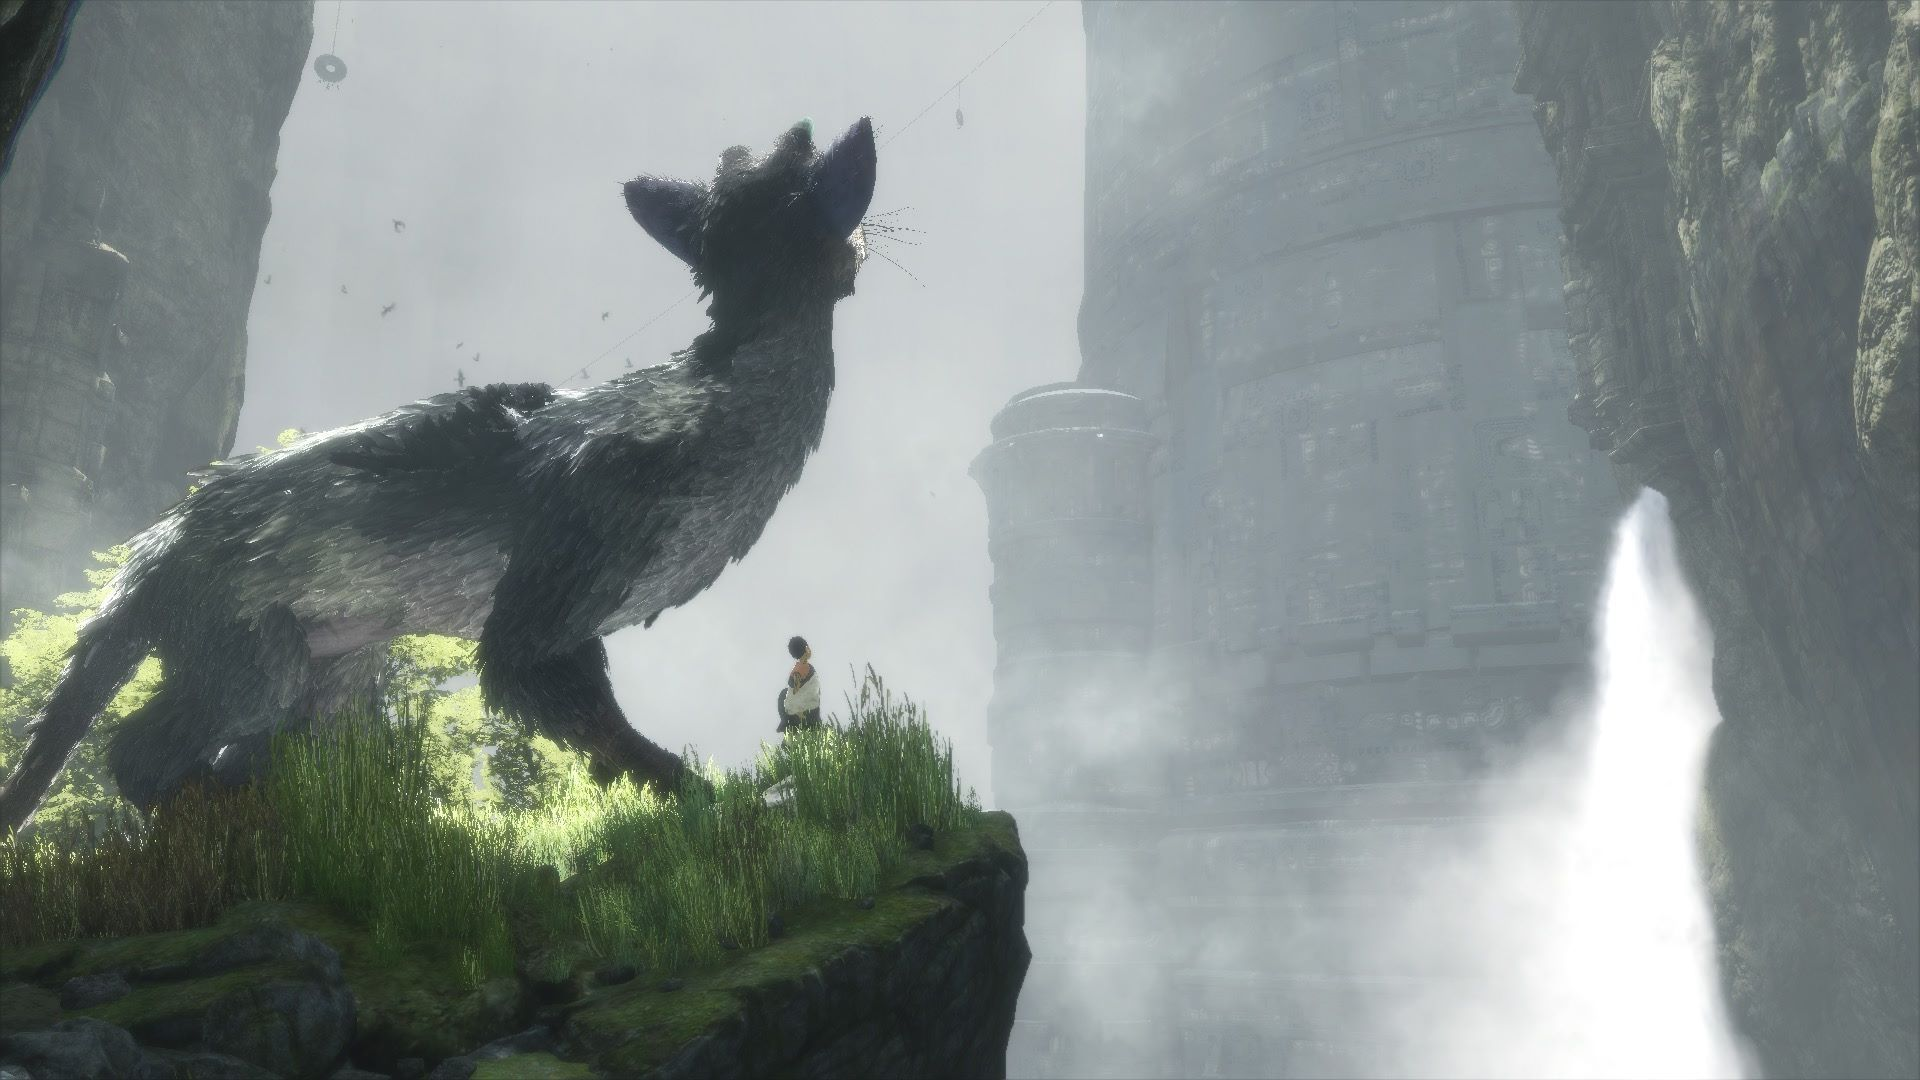 With The Last Guardian arriving on store shelves in a little under a week, Sony of Japan has released an eight minute long introduction trailer